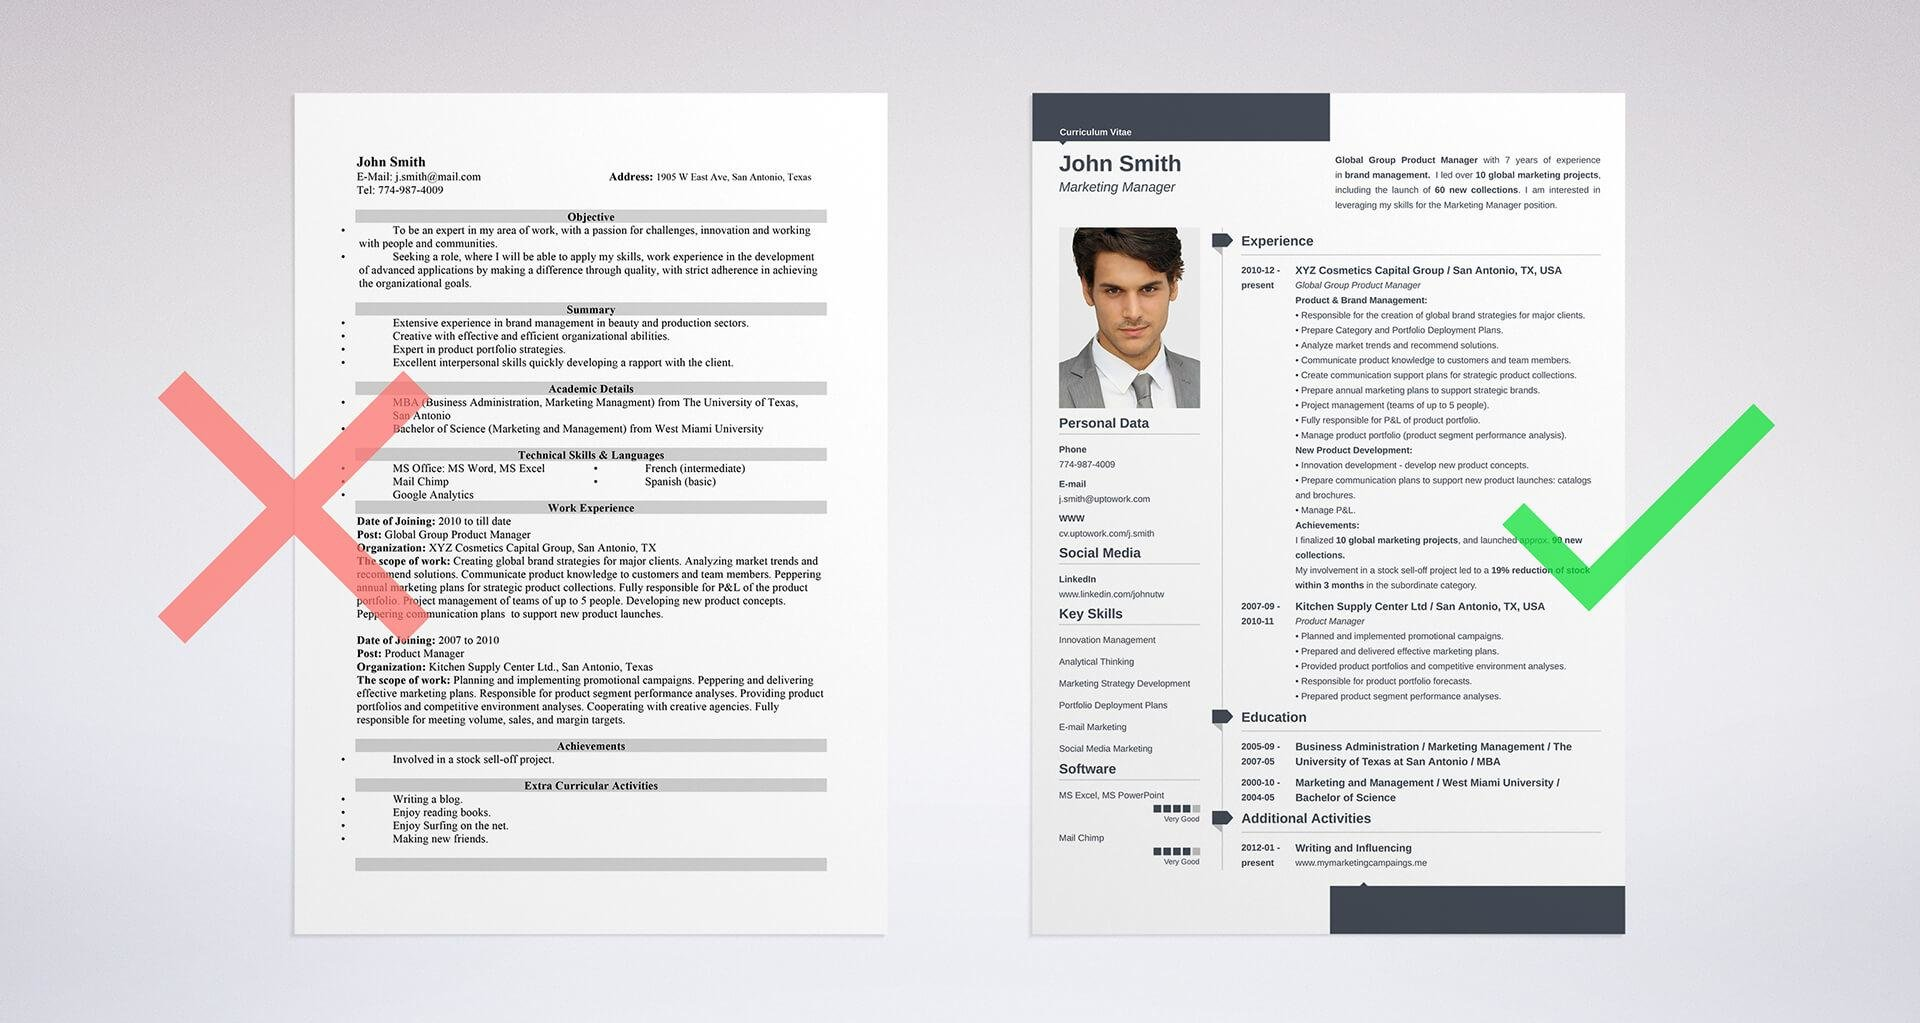 CV vs Resume: Difference, Definitions & When to Use Which